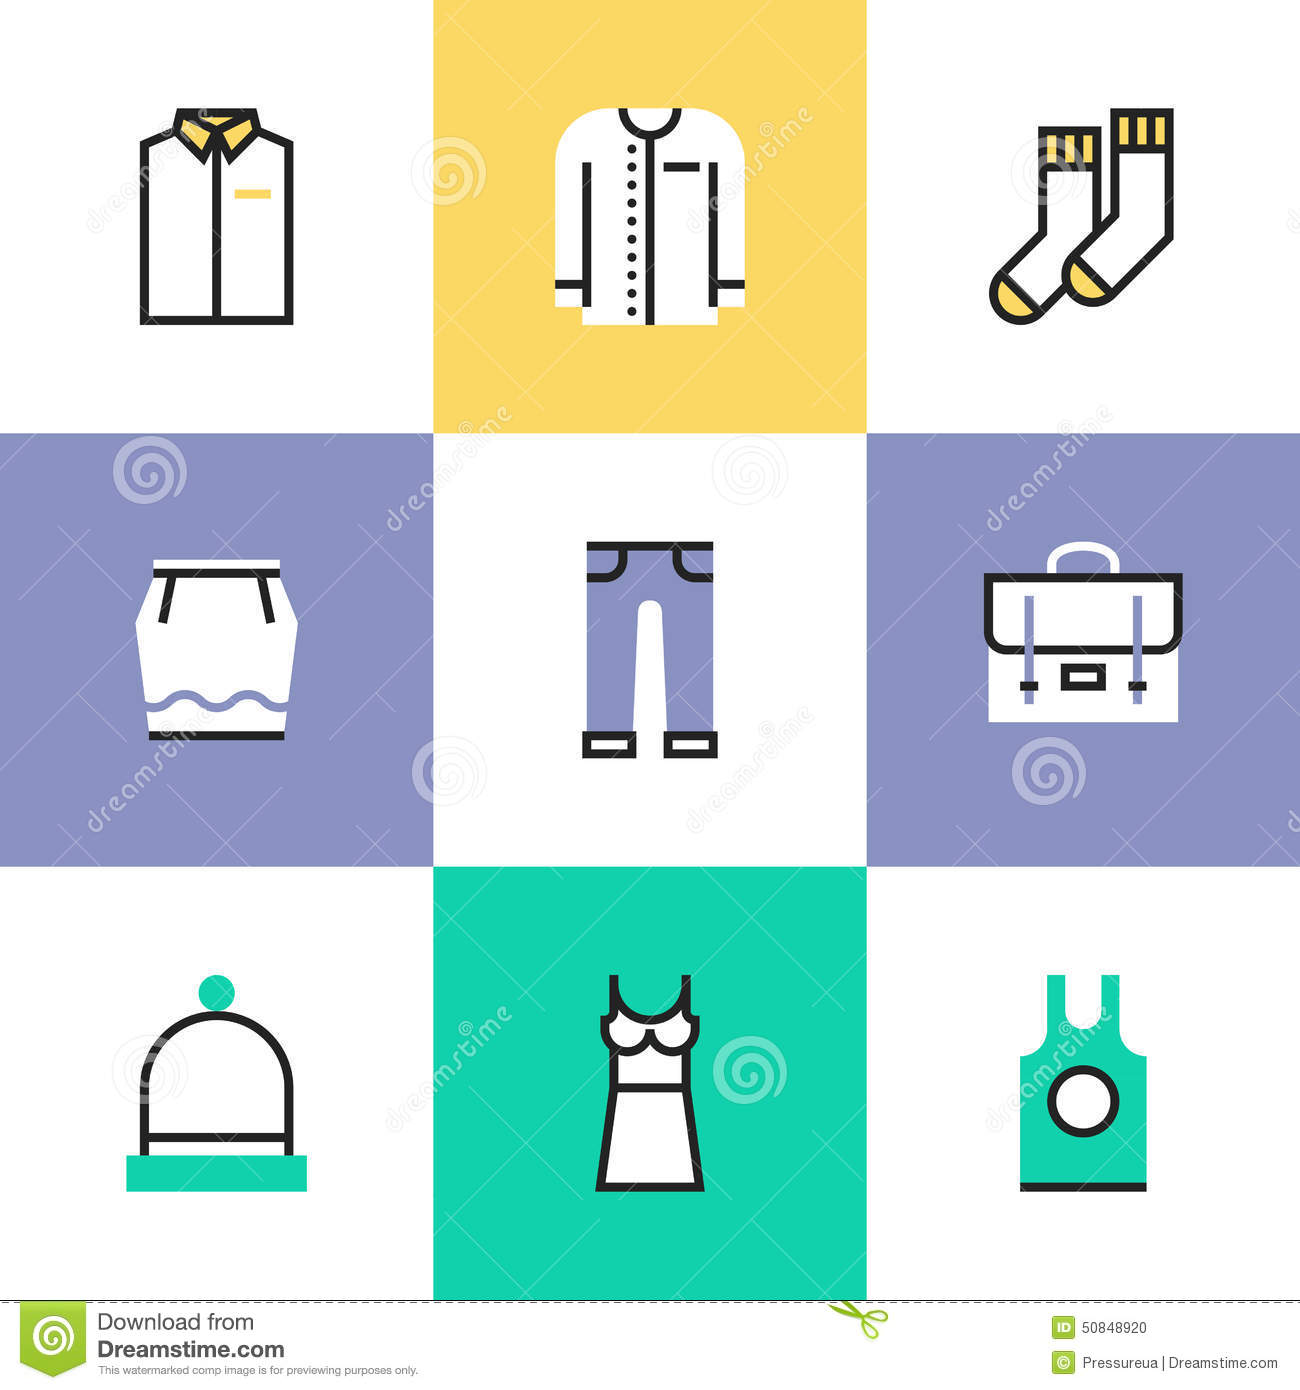 Stock Illustration Everyday Clothes Pictogram Icons Set Flat Line Casual Clothing Items Men Woman Formal Dresses Office Work Elegant Image50848920 moreover 4 Ps Vs 7ps additionally Dn463983 also Ralph Lauren Polo Shirt Size Chart likewise Chanel Chain On Wallet. on jeans diagram